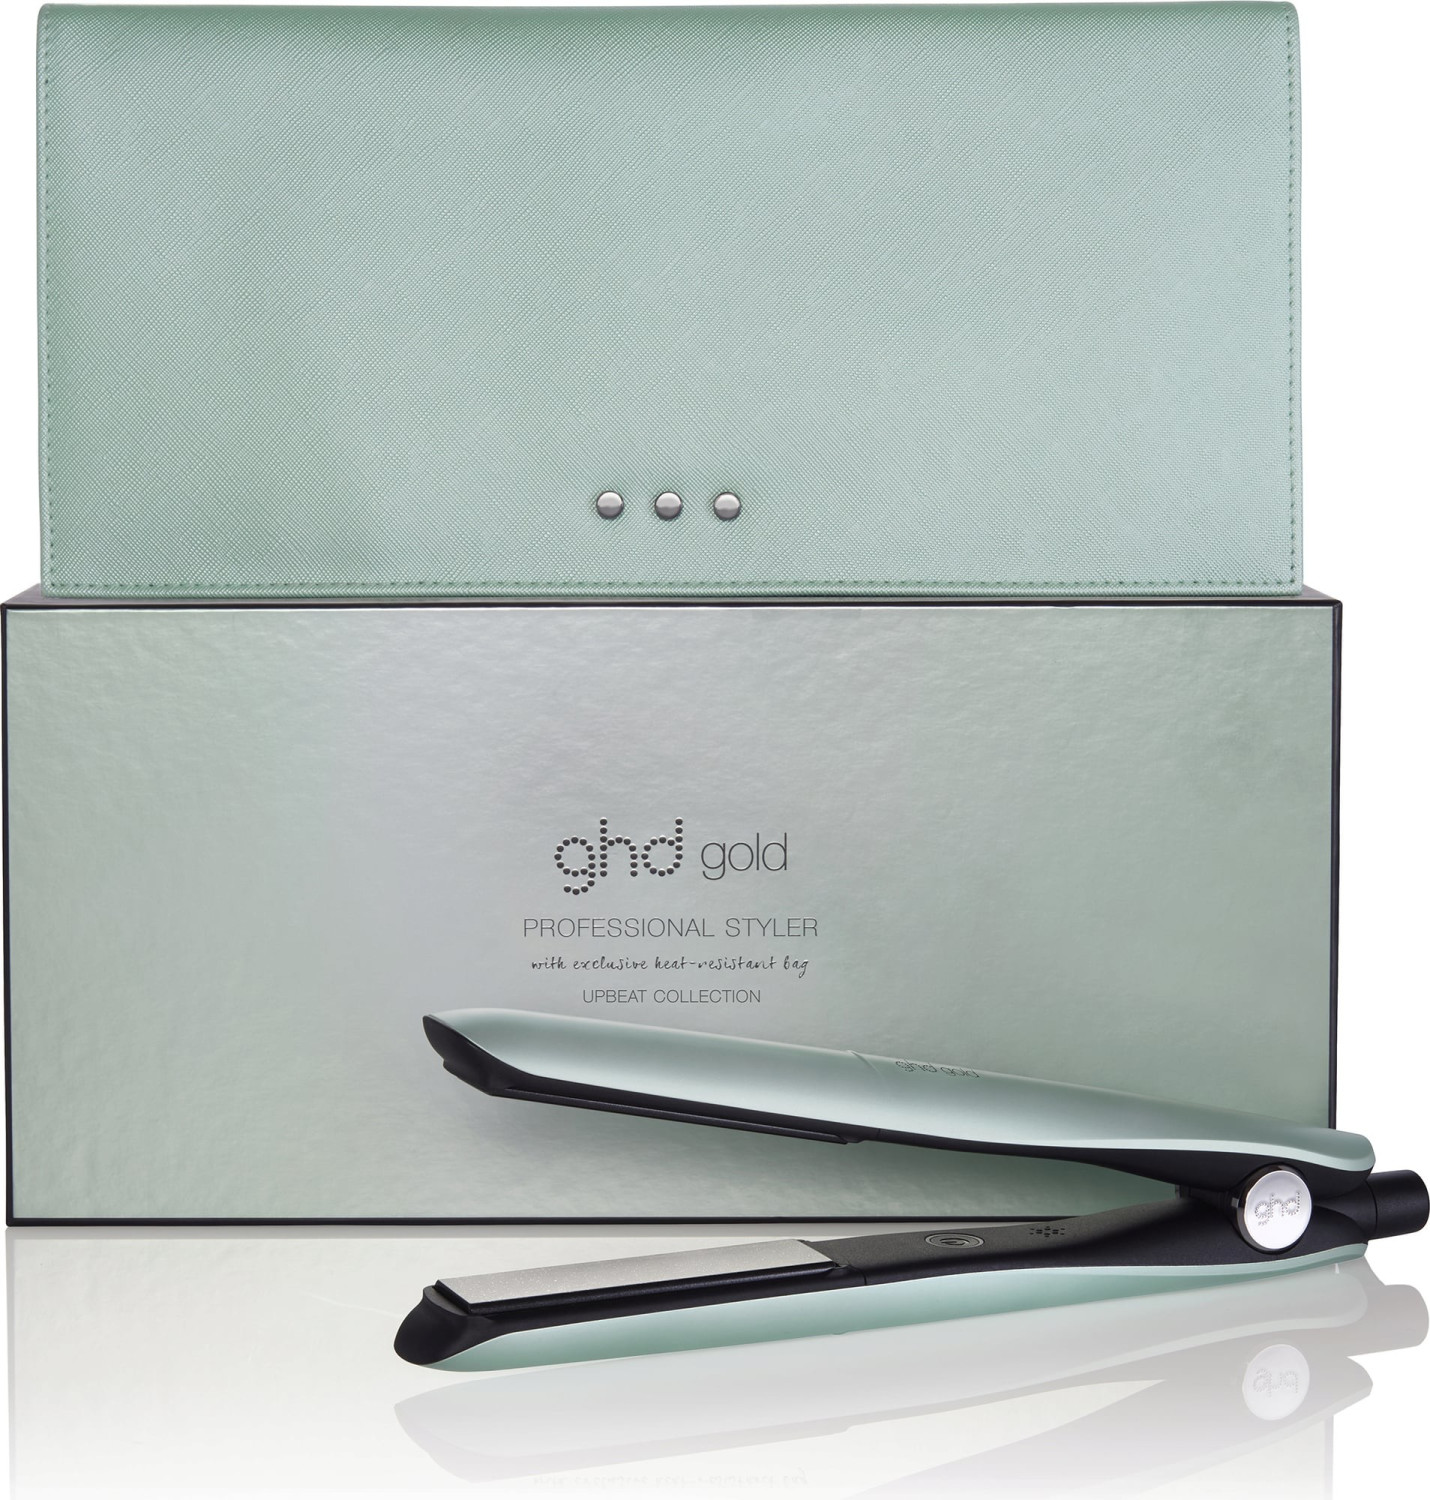 Image of GHD gold Upbeat Styler